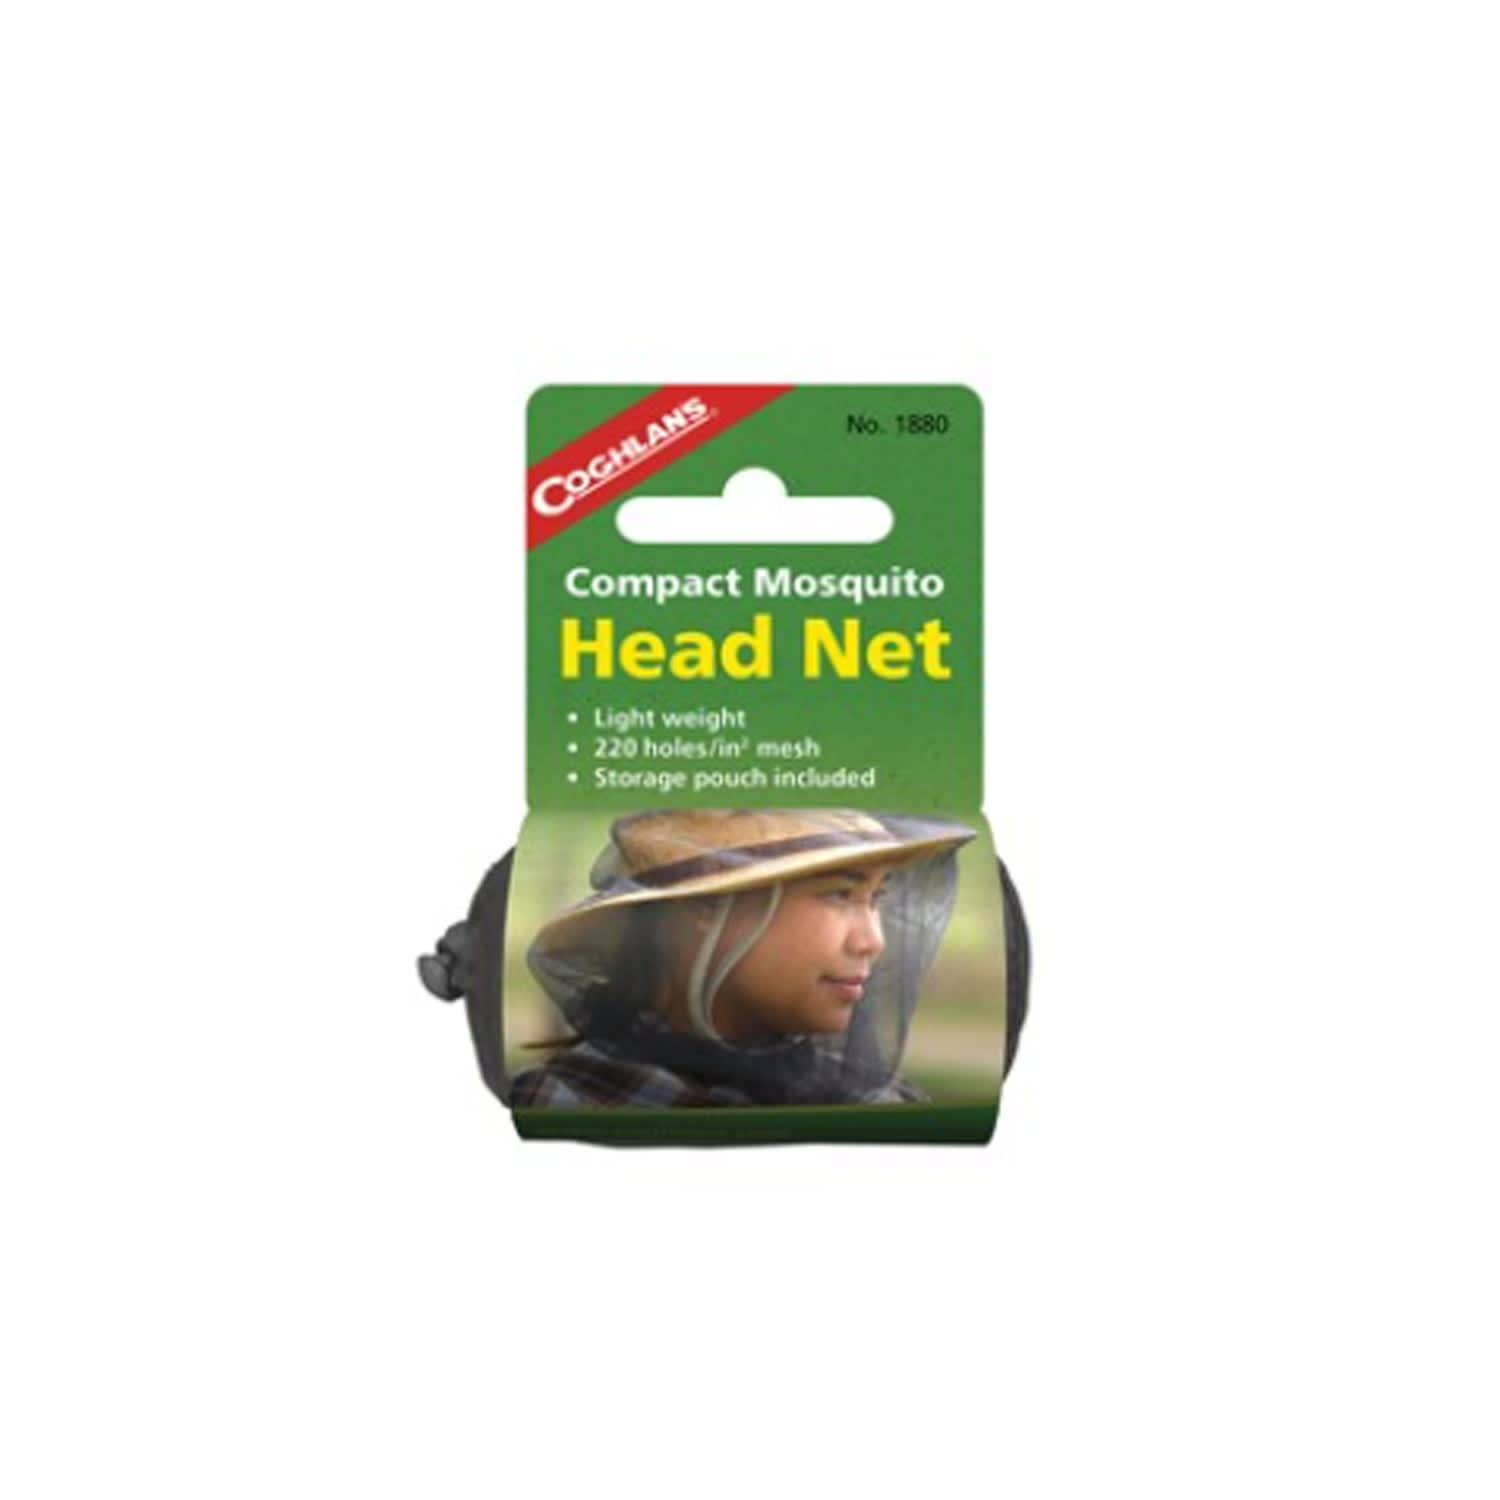 Coghlands Compact Mosquito Head Net